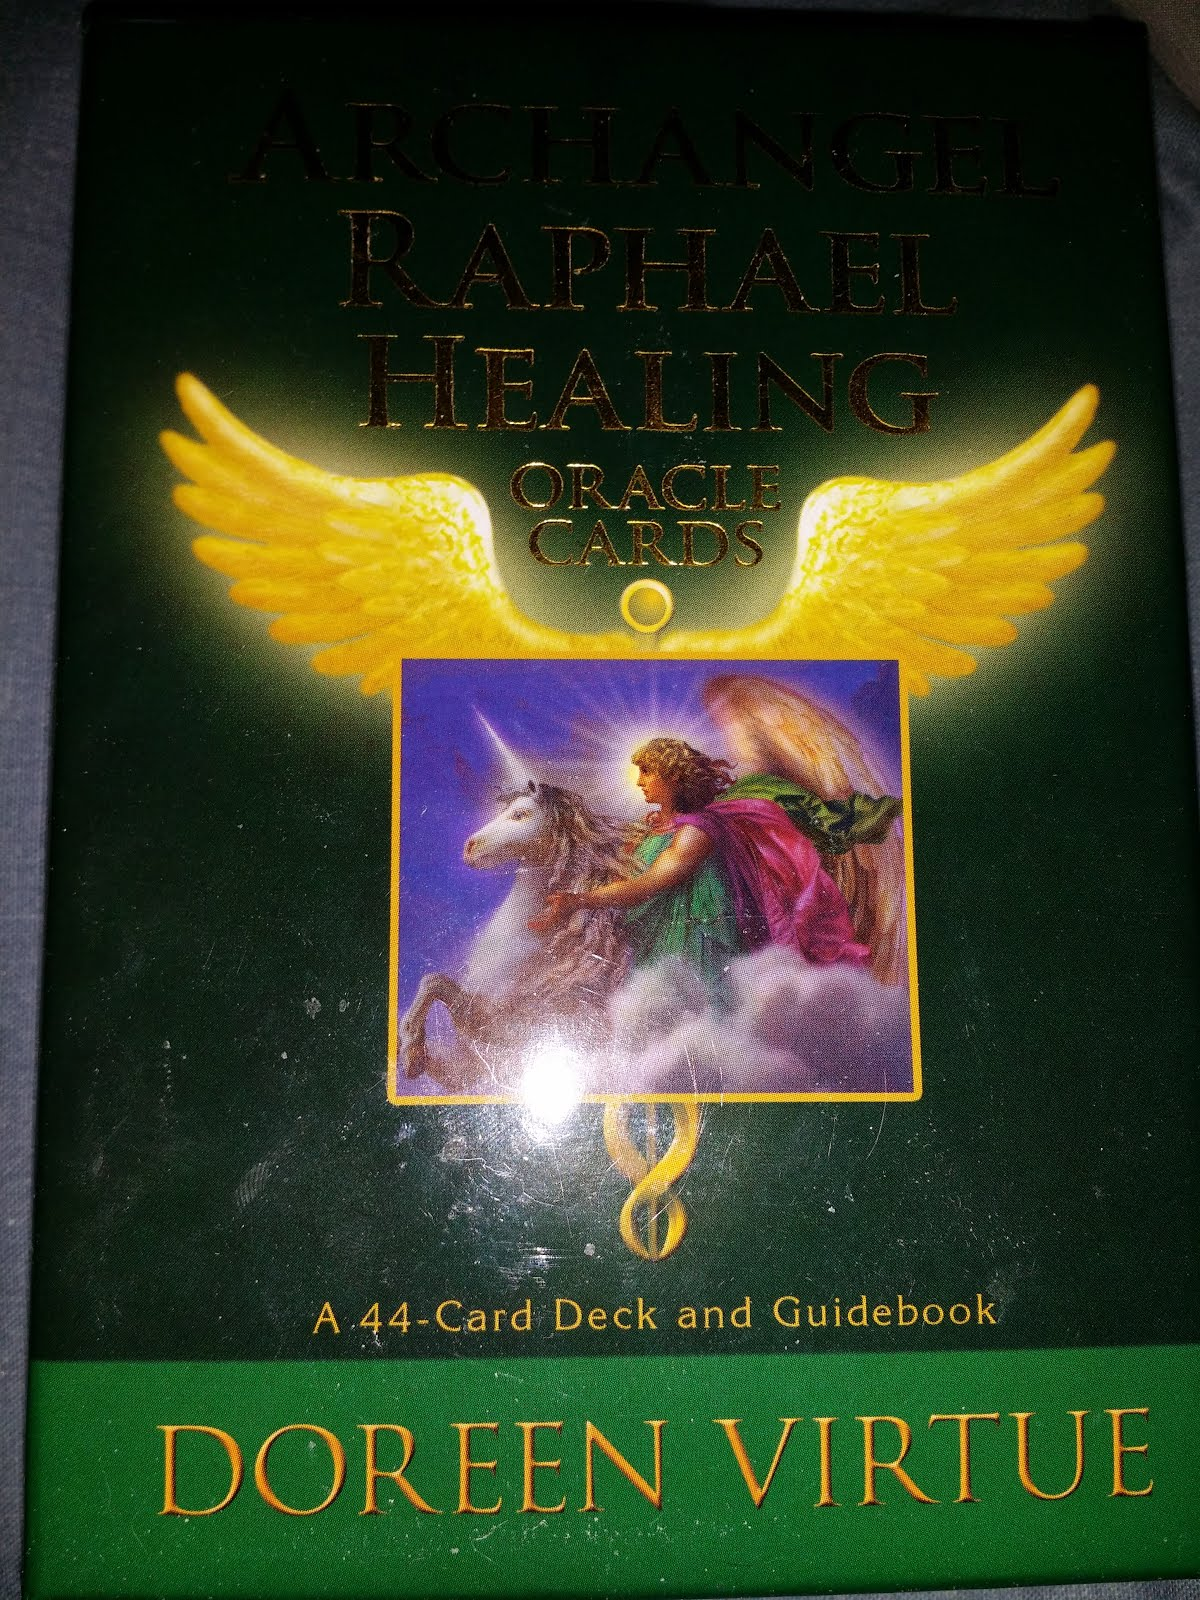 Archangel Raphael Healing Oracle